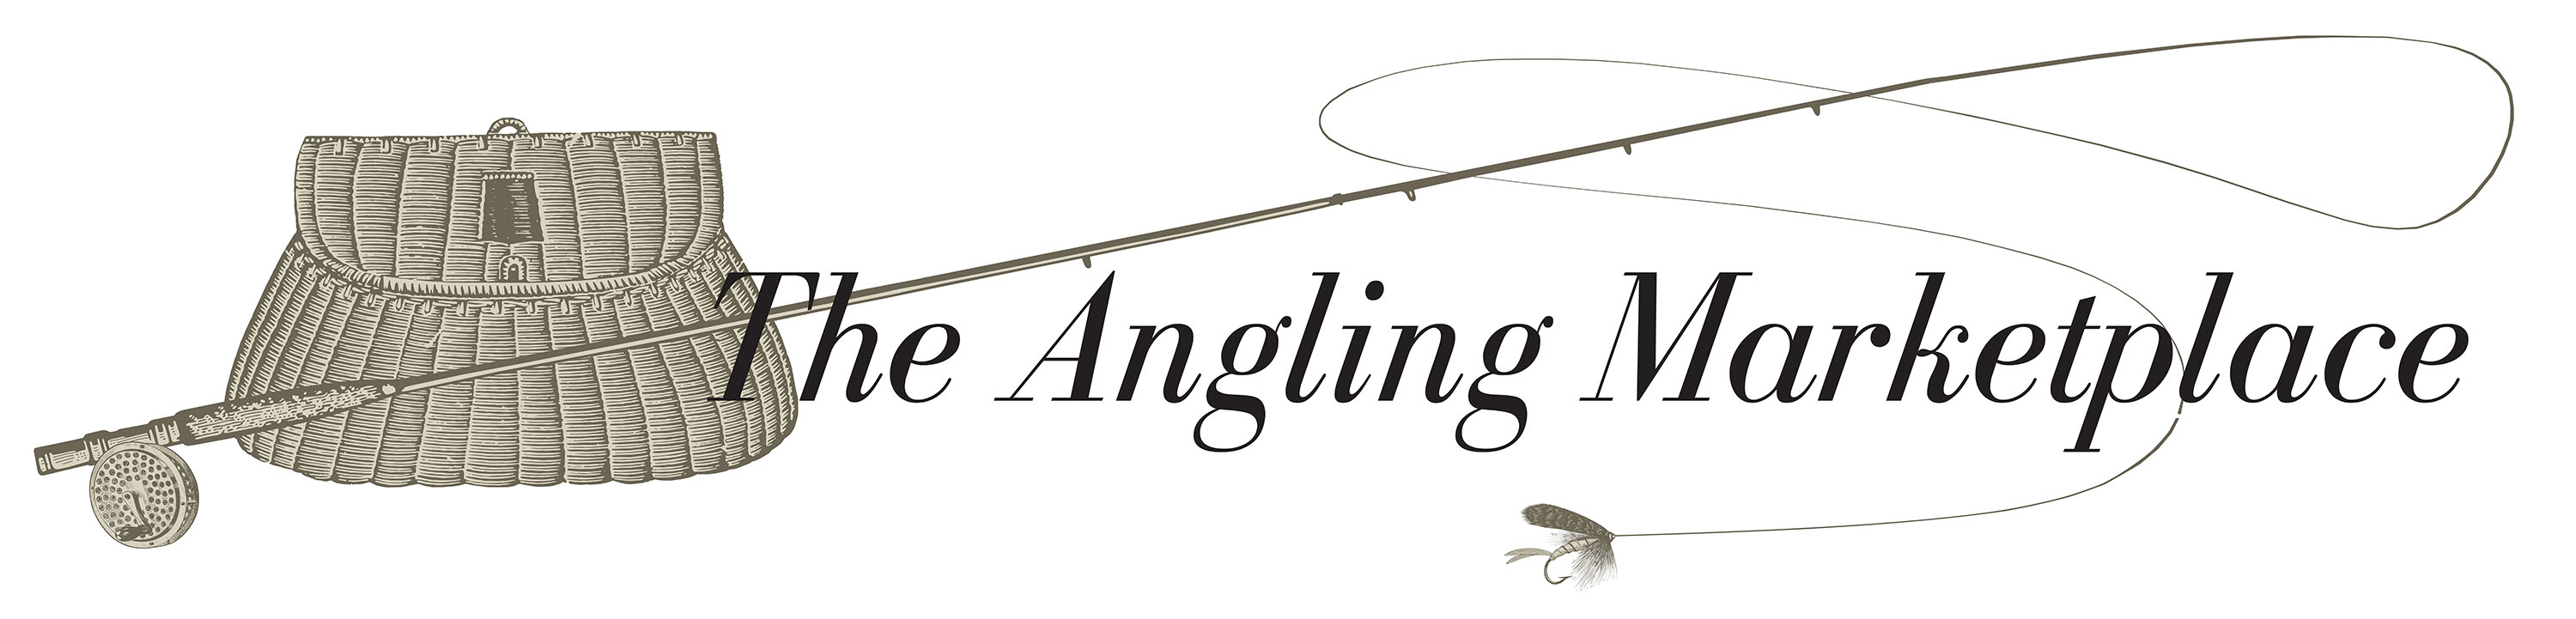 The Angling Marketplace